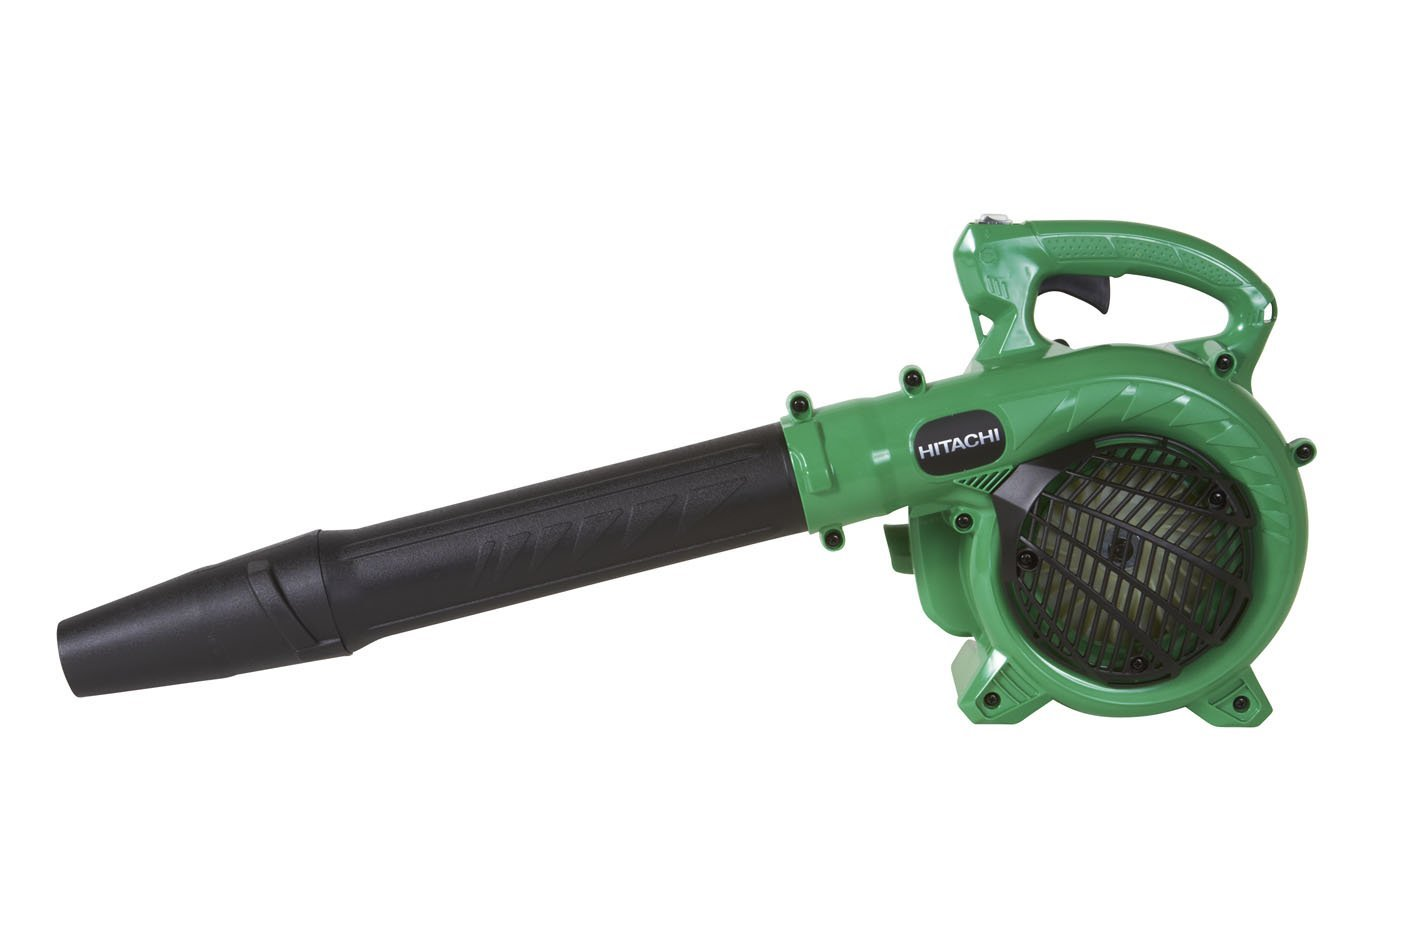 Hitachi RB24EAP Gas Powered Leaf Blower, Handheld, Lightweight, 23.9cc 2 Cycle Engine, Class Leading 441 CFM, 170 MPH